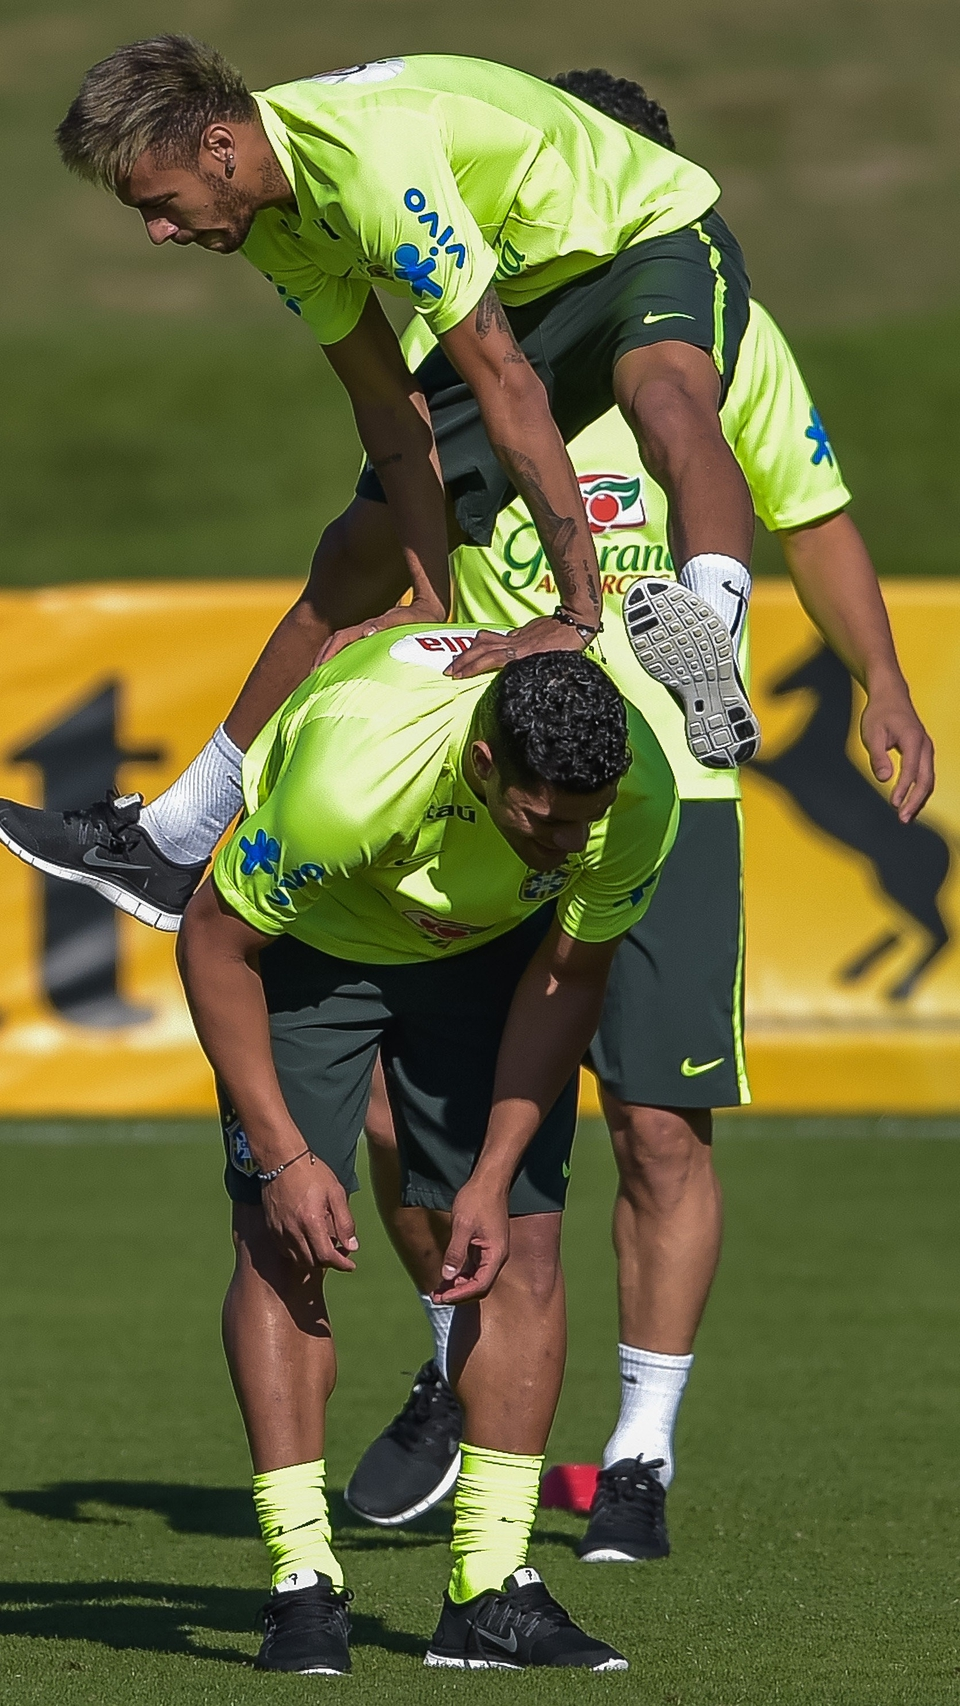 At the same training session, Neymar was in high spirits, leap-frogging Hulkl